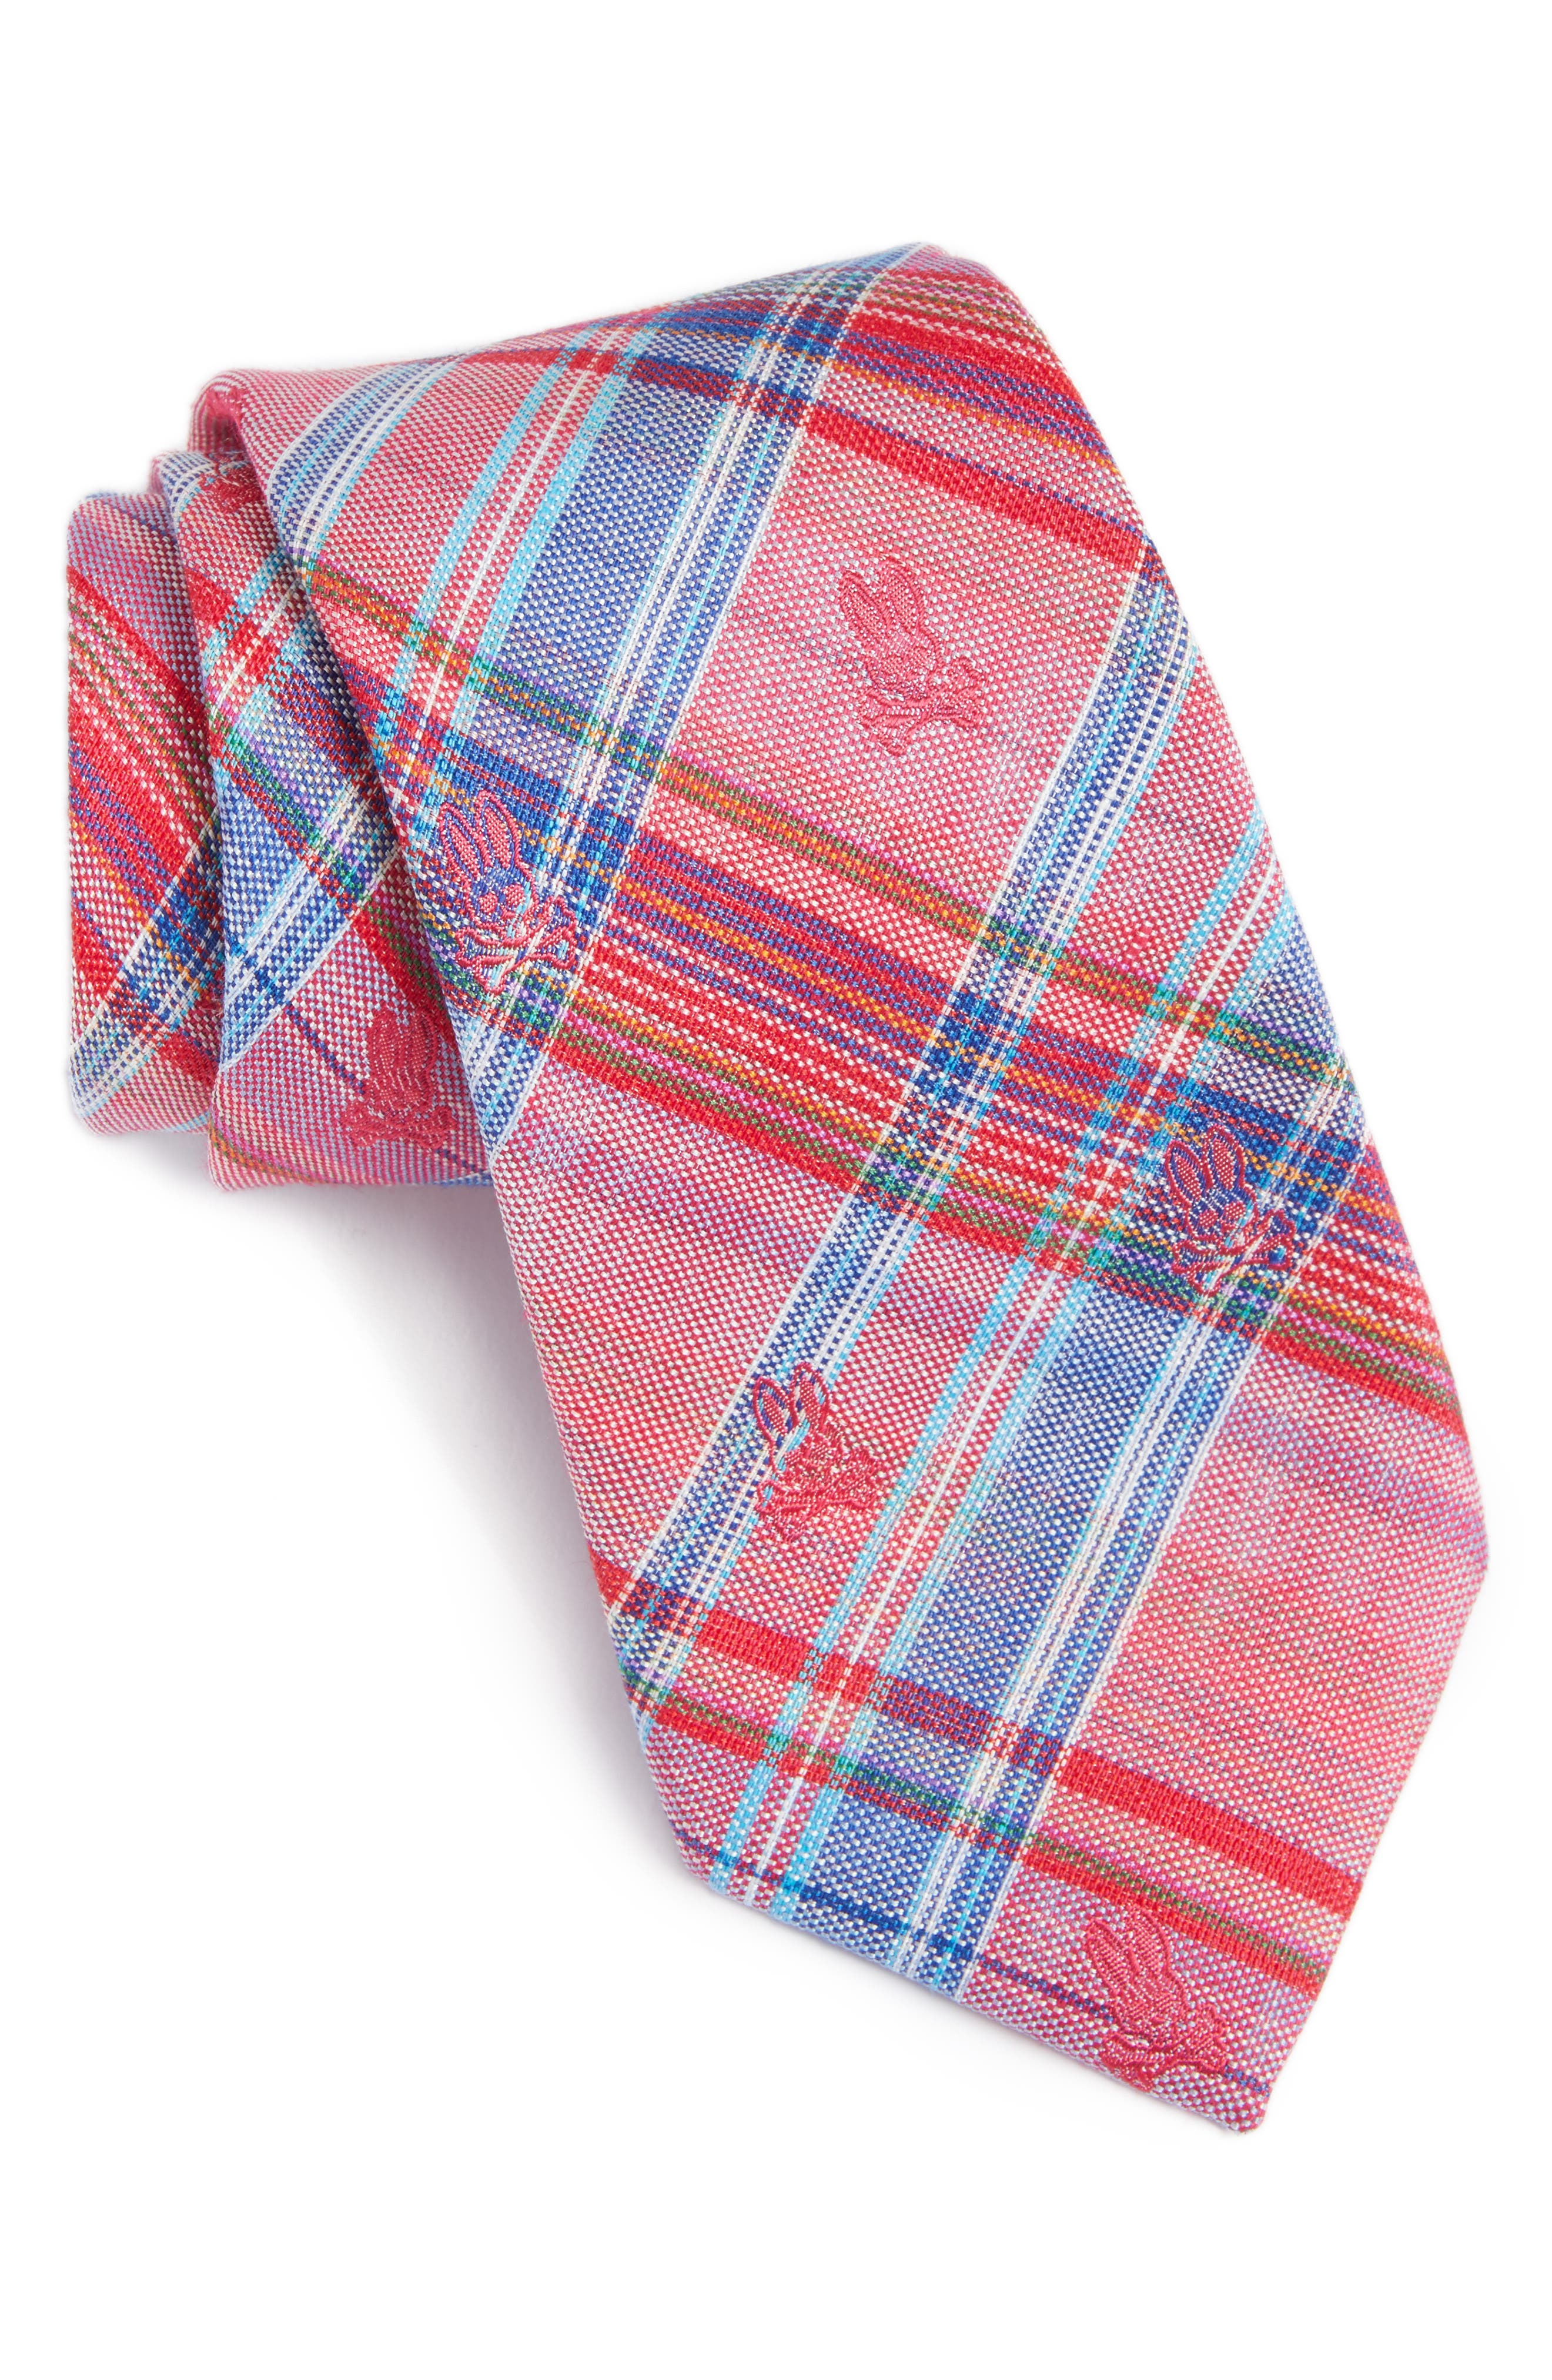 Plaid Bunny Silk Tie,                             Main thumbnail 1, color,                             Punch